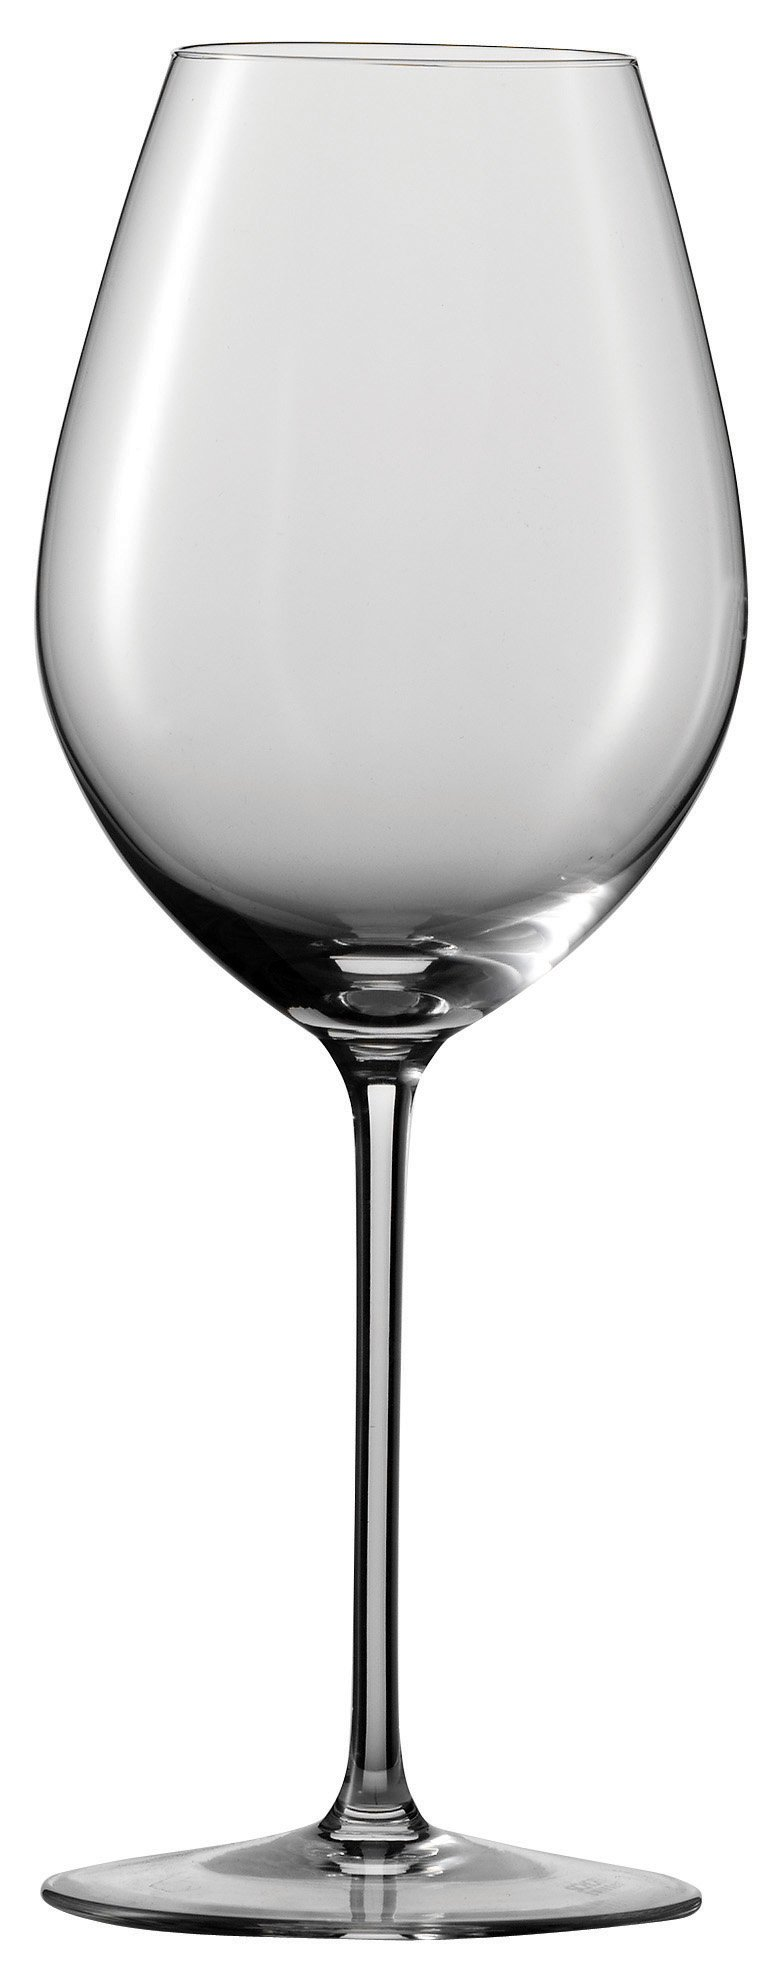 Zwiesel 1872 Enoteca Collection Handmade Chianti, Red Wine Glass, 18.7-Ounce, Set of 6